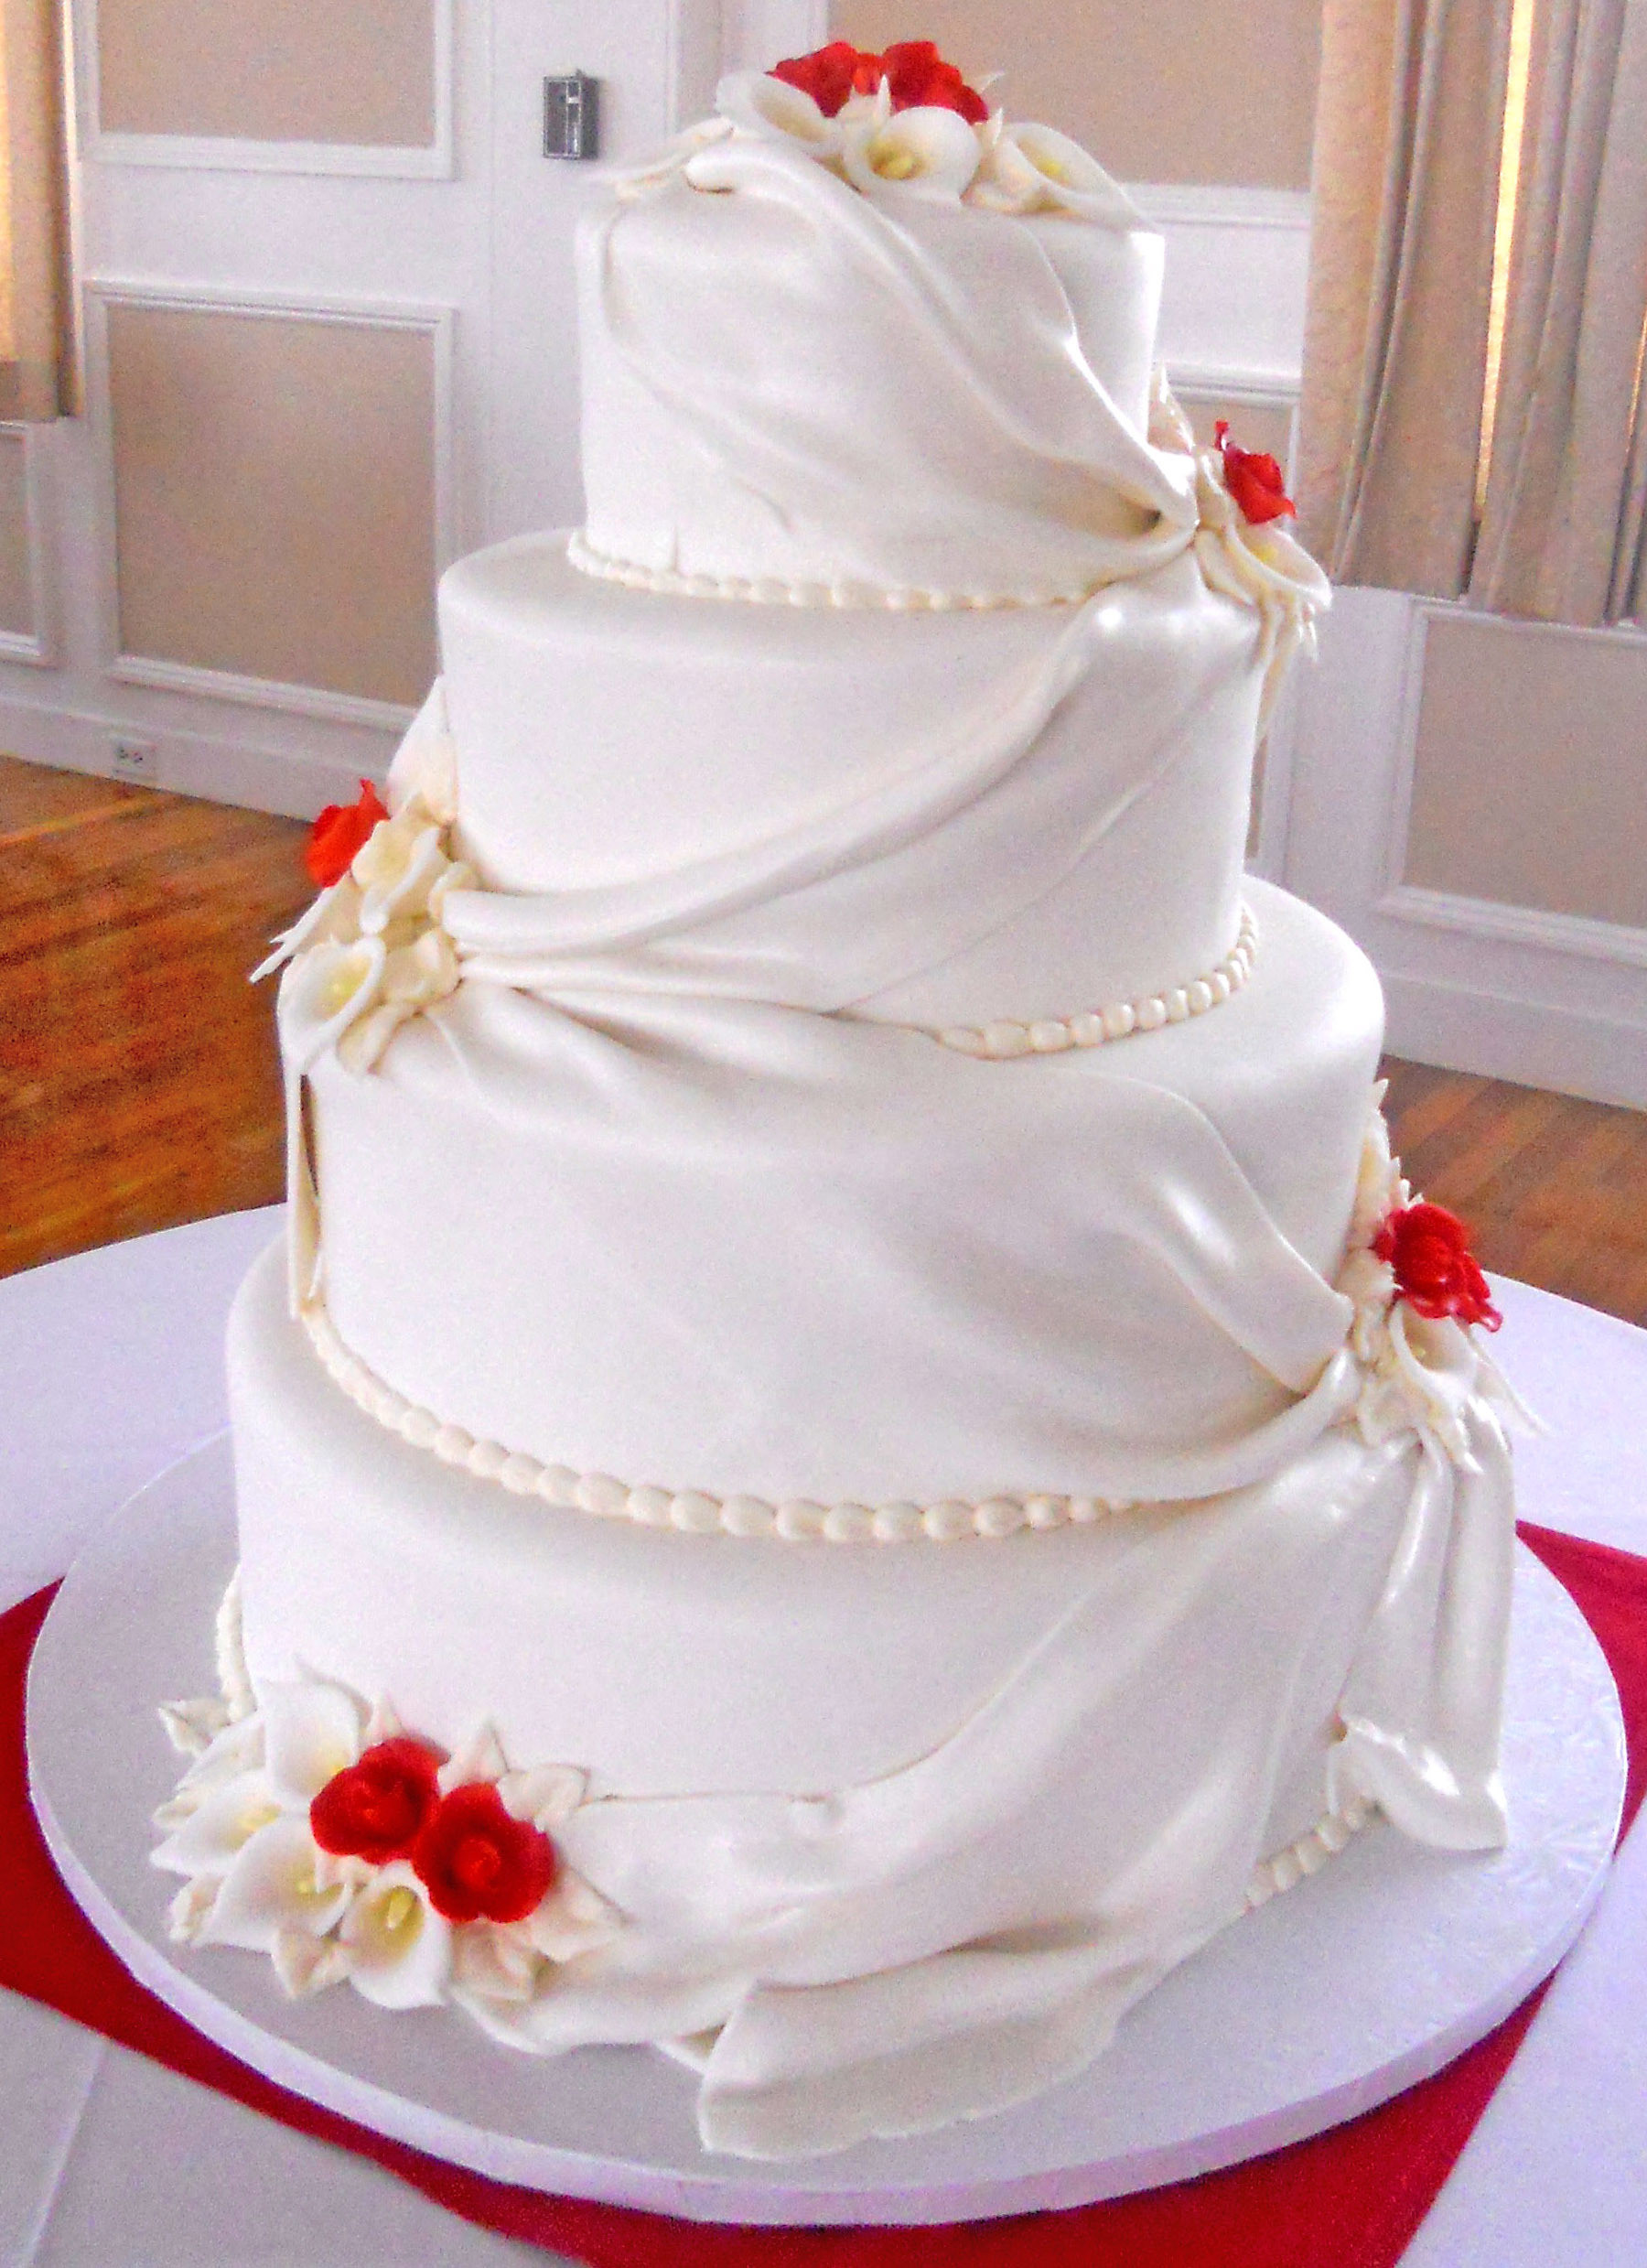 Who Makes Wedding Cakes  Wedding Cakes Idea Wallpapers